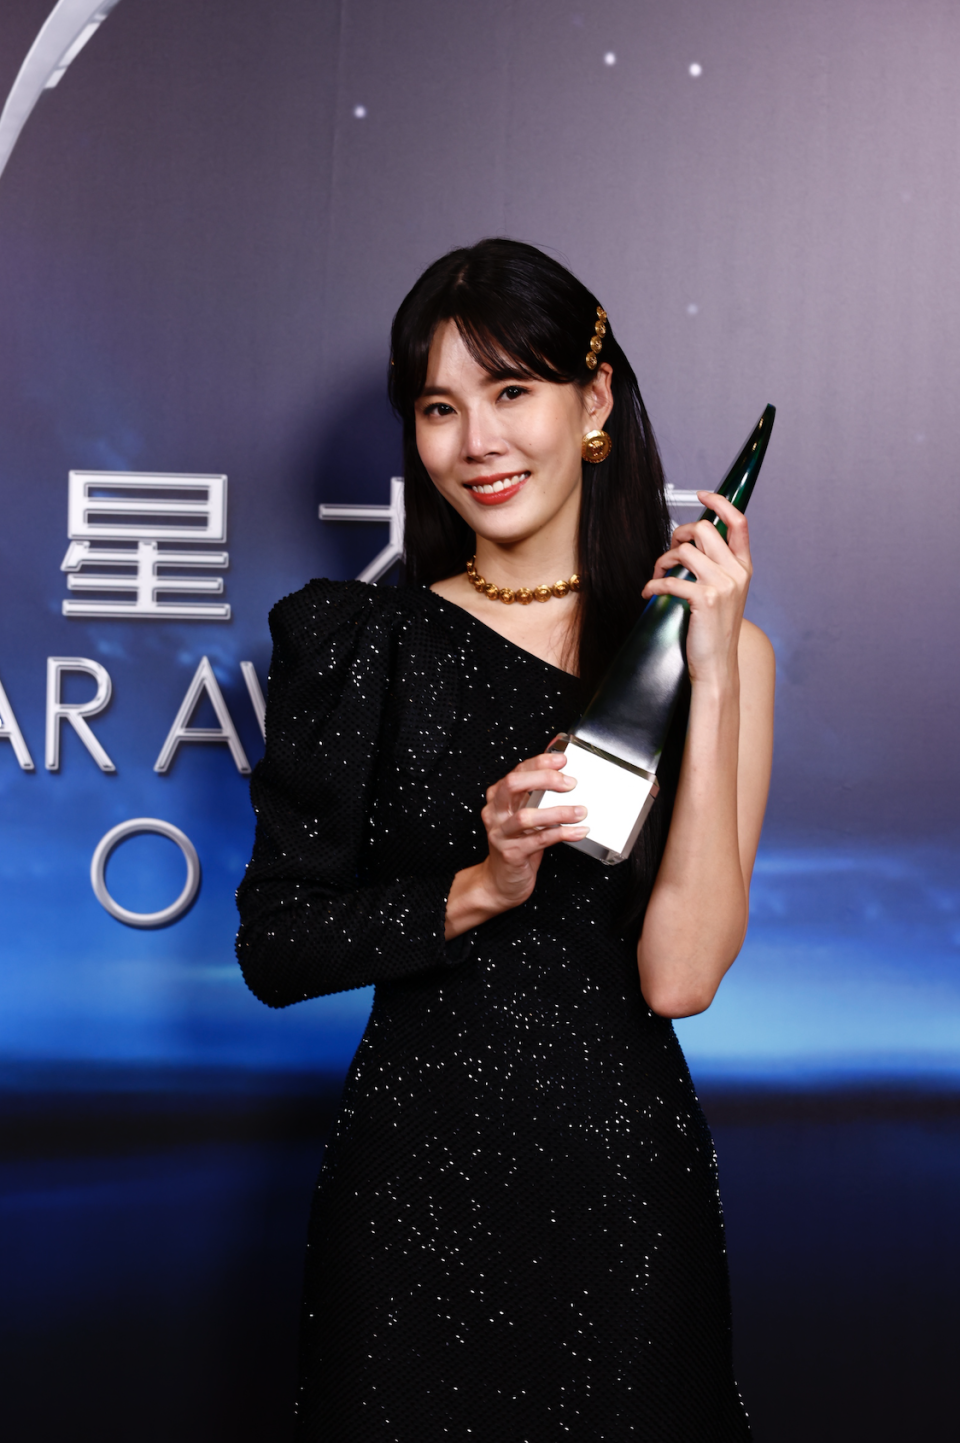 Carrie Wong at Star Awards held at Changi Airport on 18 April 2021. (Photo: Mediacorp)